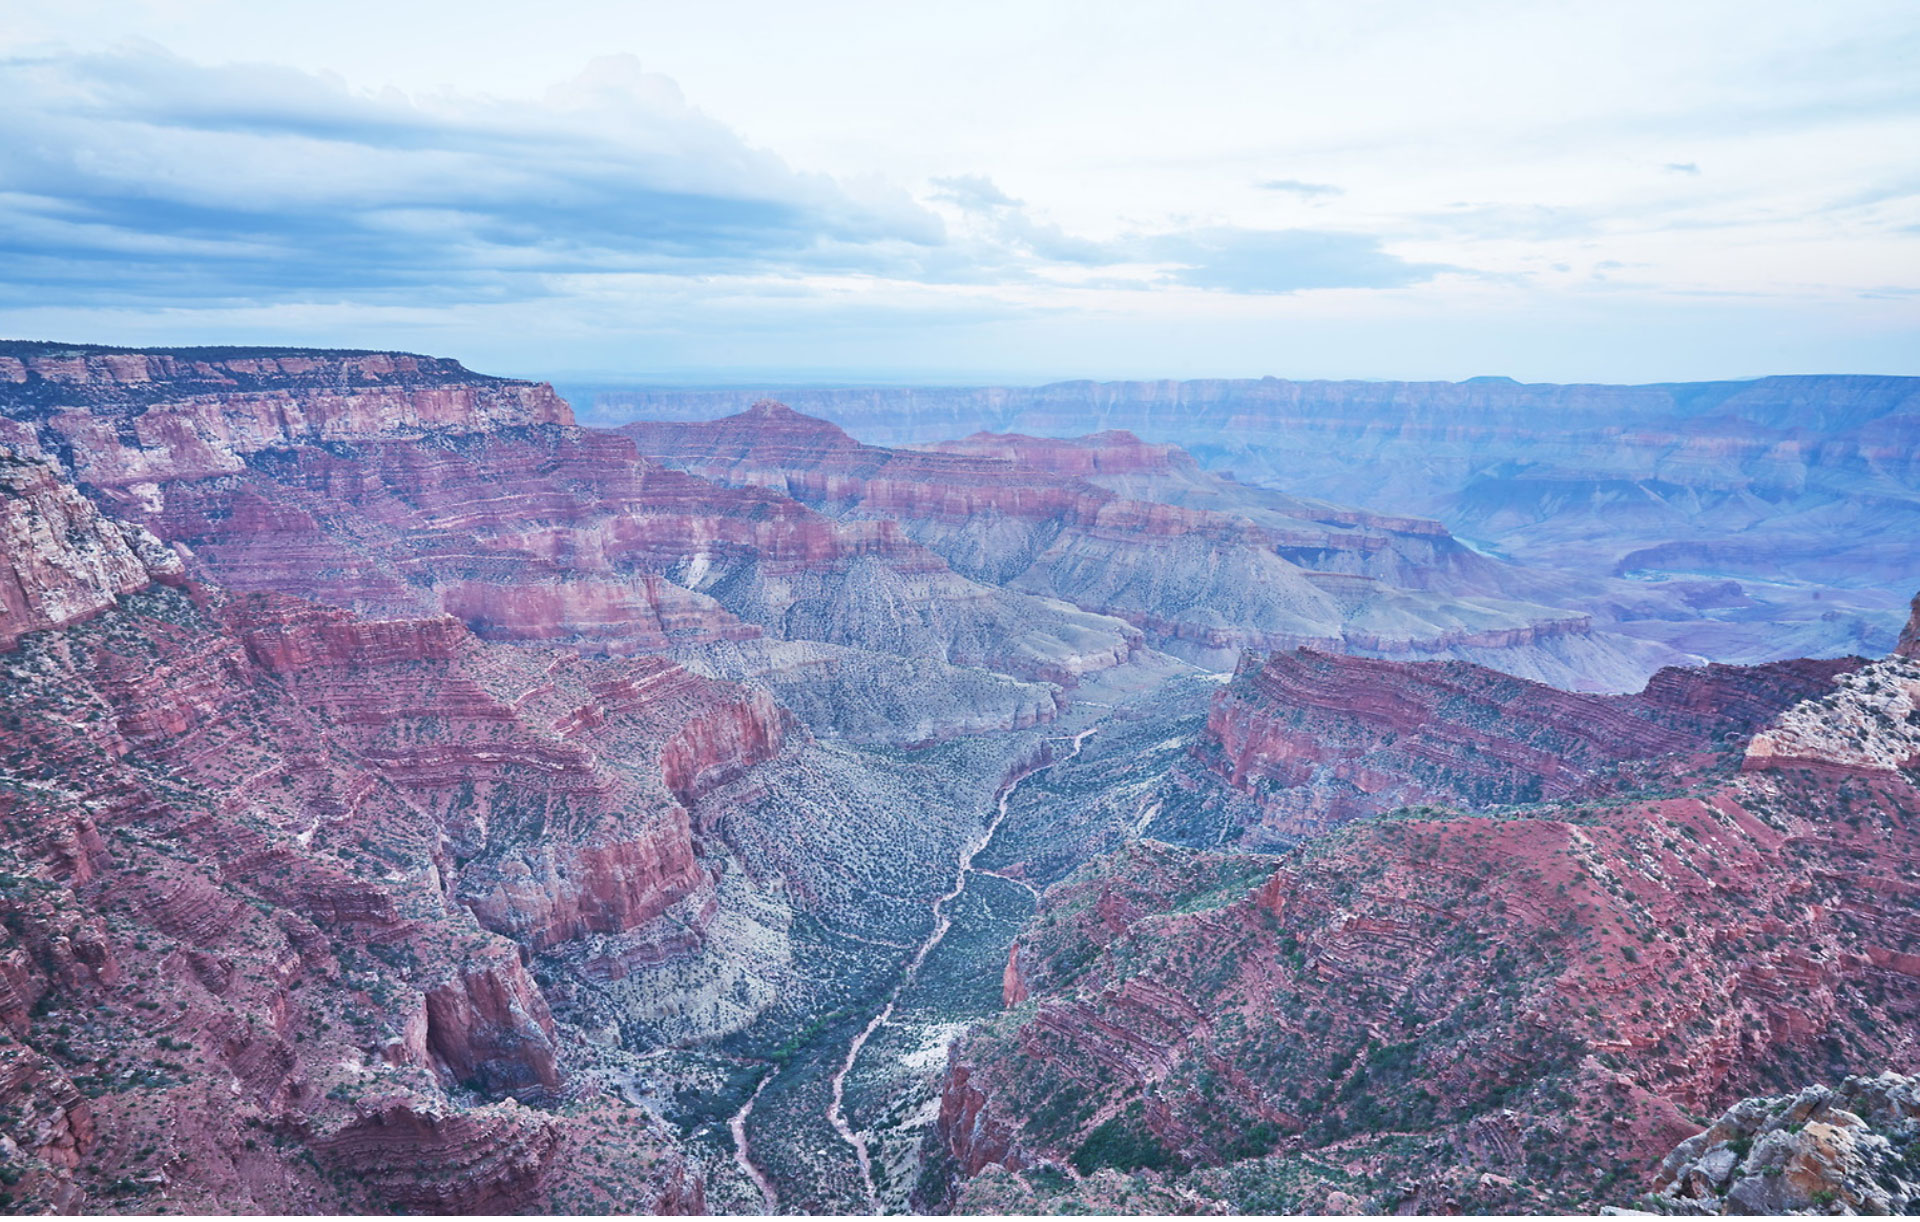 ALL 50 STATES - Cape Royal, Grand Canyon North Rim©Tony Gale photography